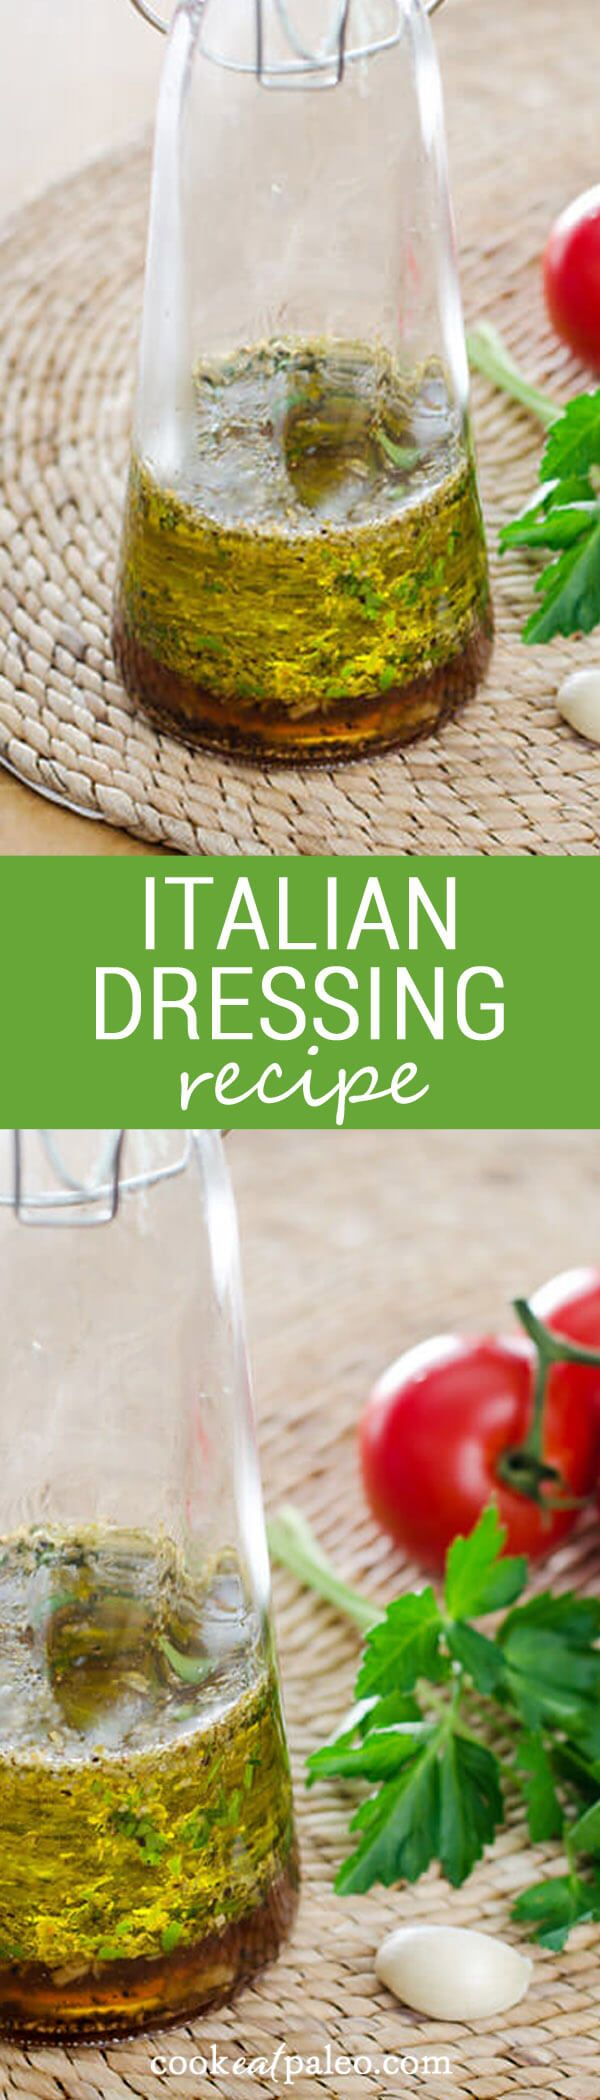 The best Italian dressing recipe - so easy to make. Just throw a few fresh ingredients in a bottle and shake. It's paleo, gluten-free, and dairy-free. ~ http://cookeatpaleo.com